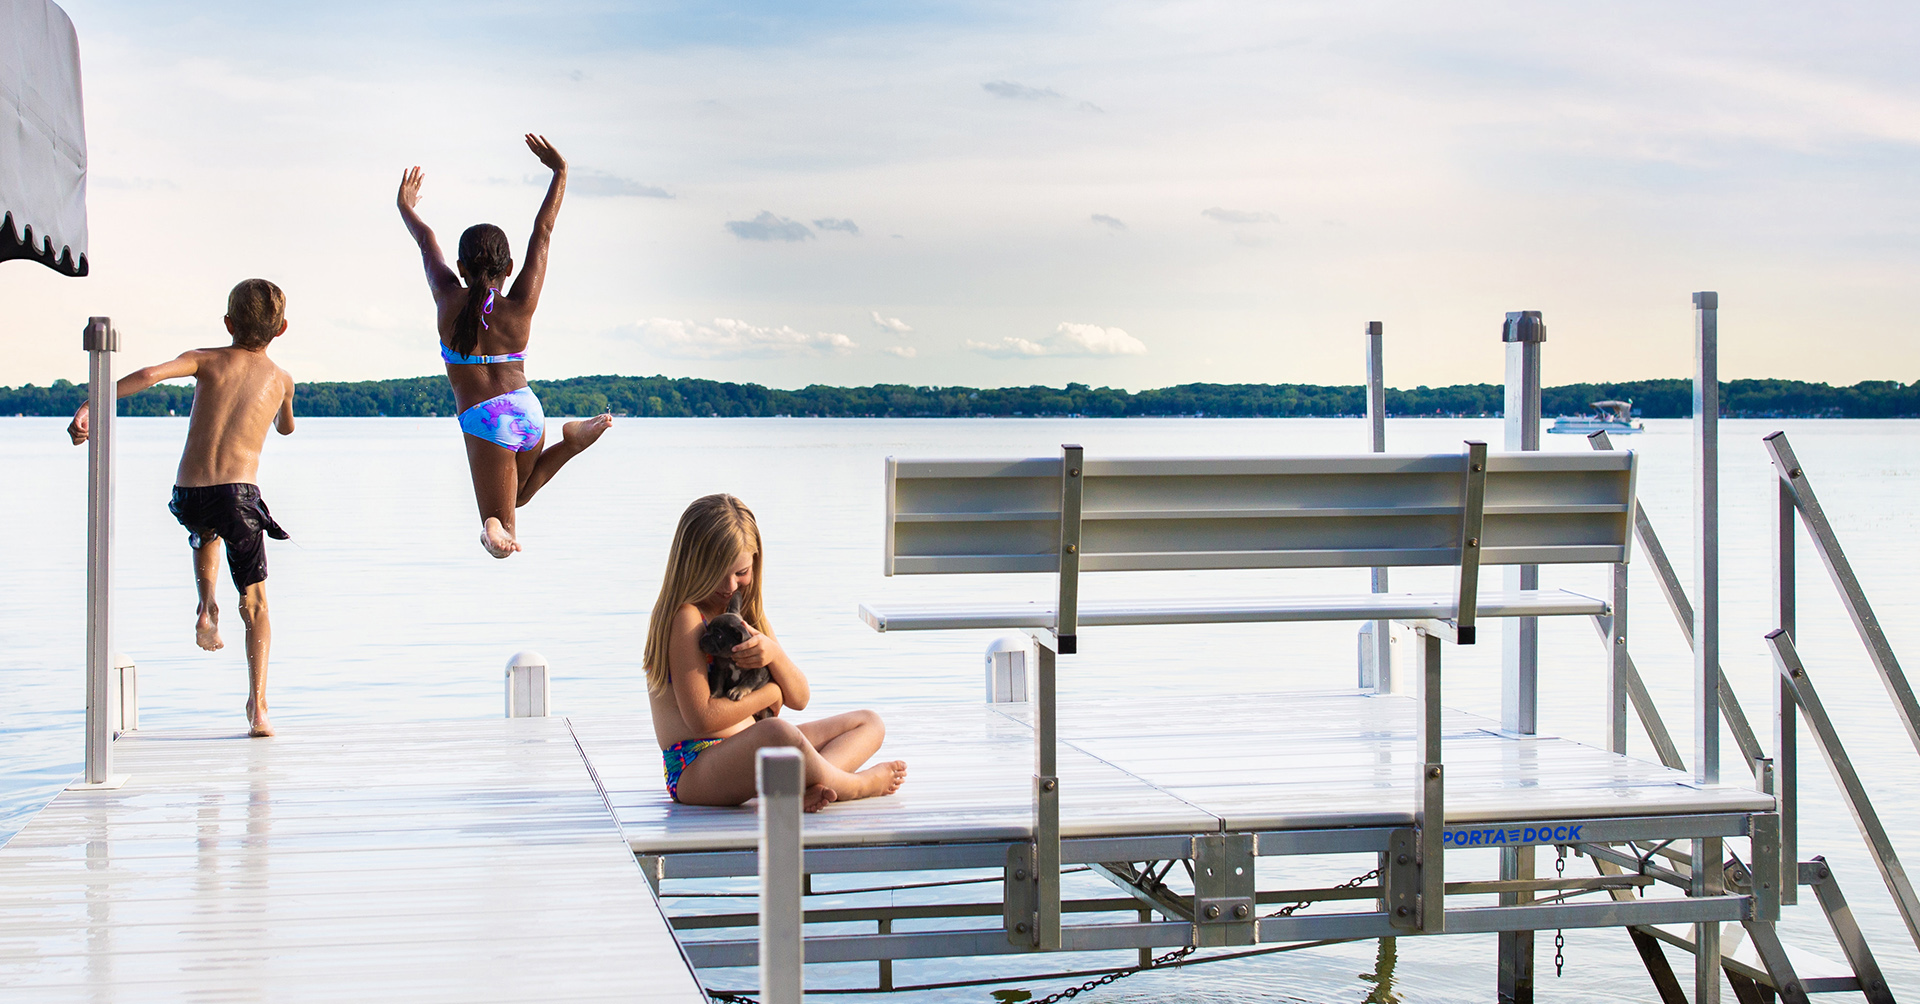 Kids jumping off a Porta-Dock dock into the lake